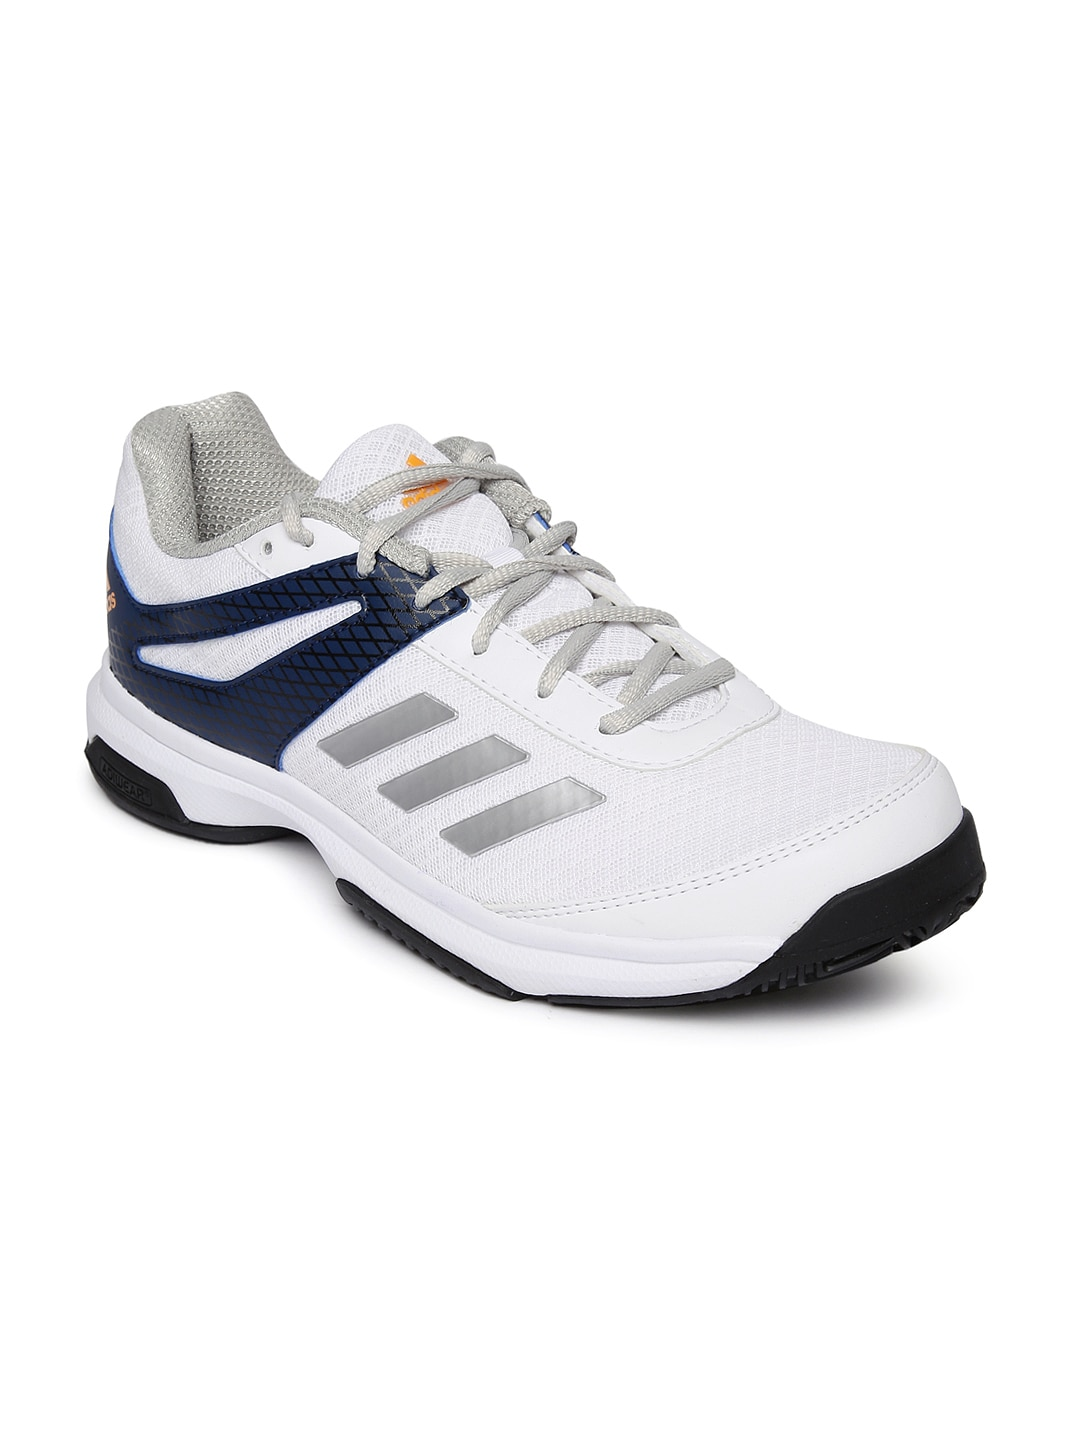 Adidas Men Tennis Shoes Sports - Buy Adidas Men Tennis Shoes Sports online  in India 9790789d0db3